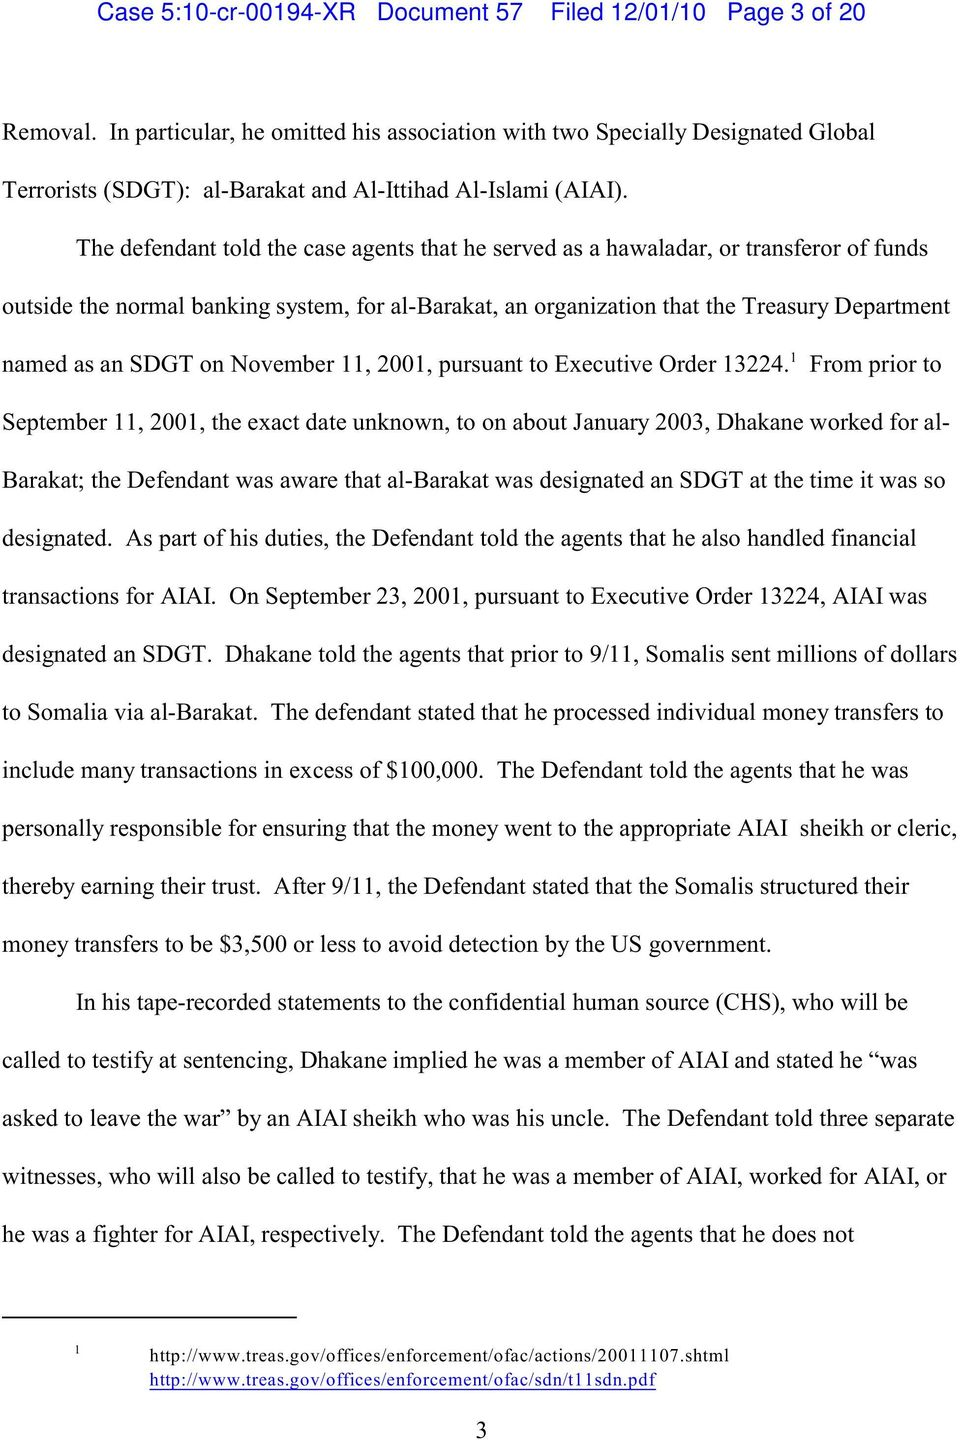 The defendant told the case agents that he served as a hawaladar, or transferor of funds outside the normal banking system, for al-barakat, an organization that the Treasury Department 1 named as an